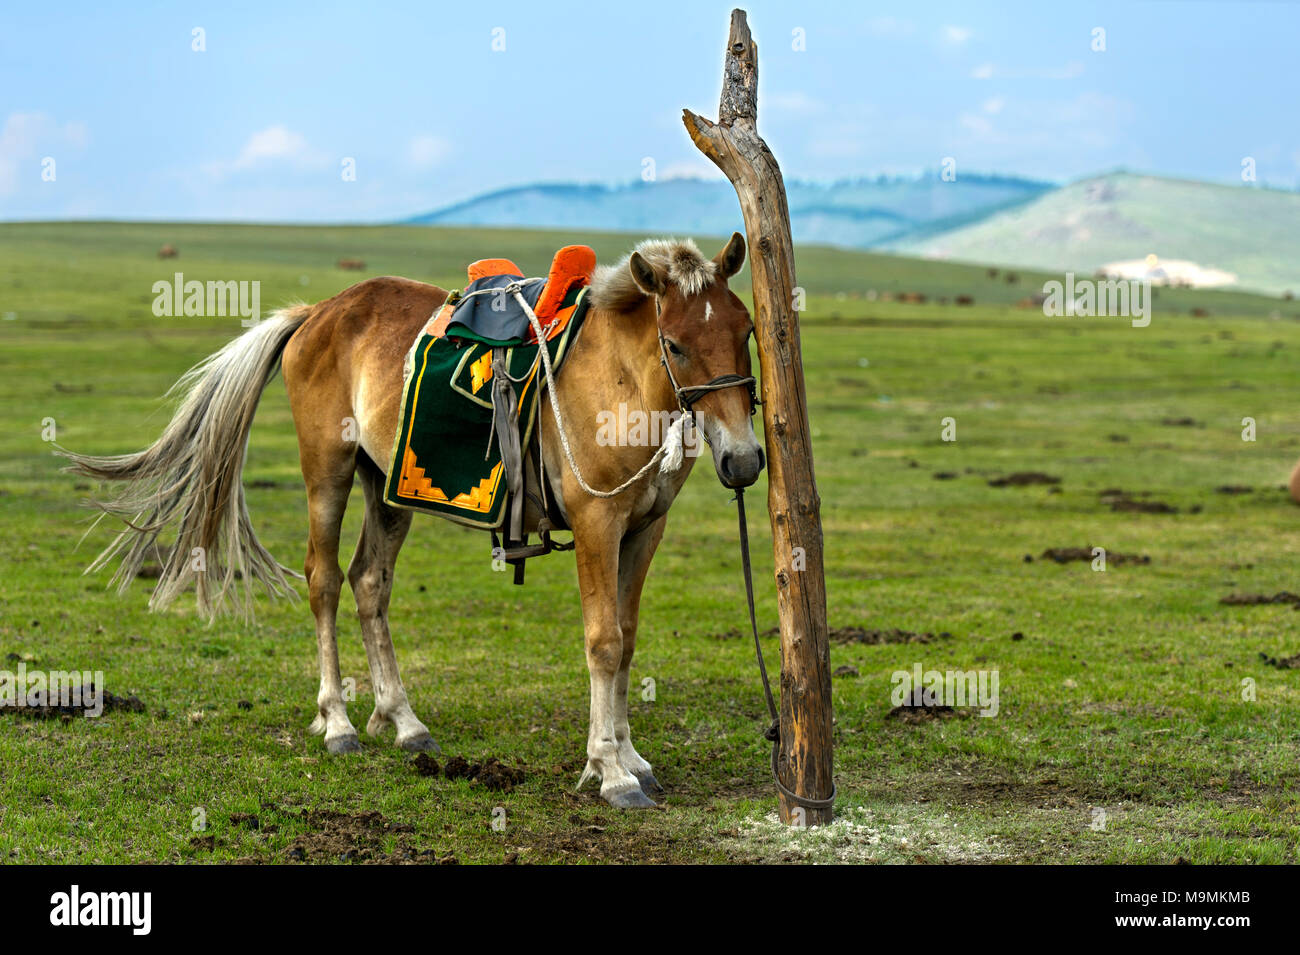 A bridled horse with a traditional saddle is tied to a pole in the steppe, near Erdenet, Mongolia - Stock Image